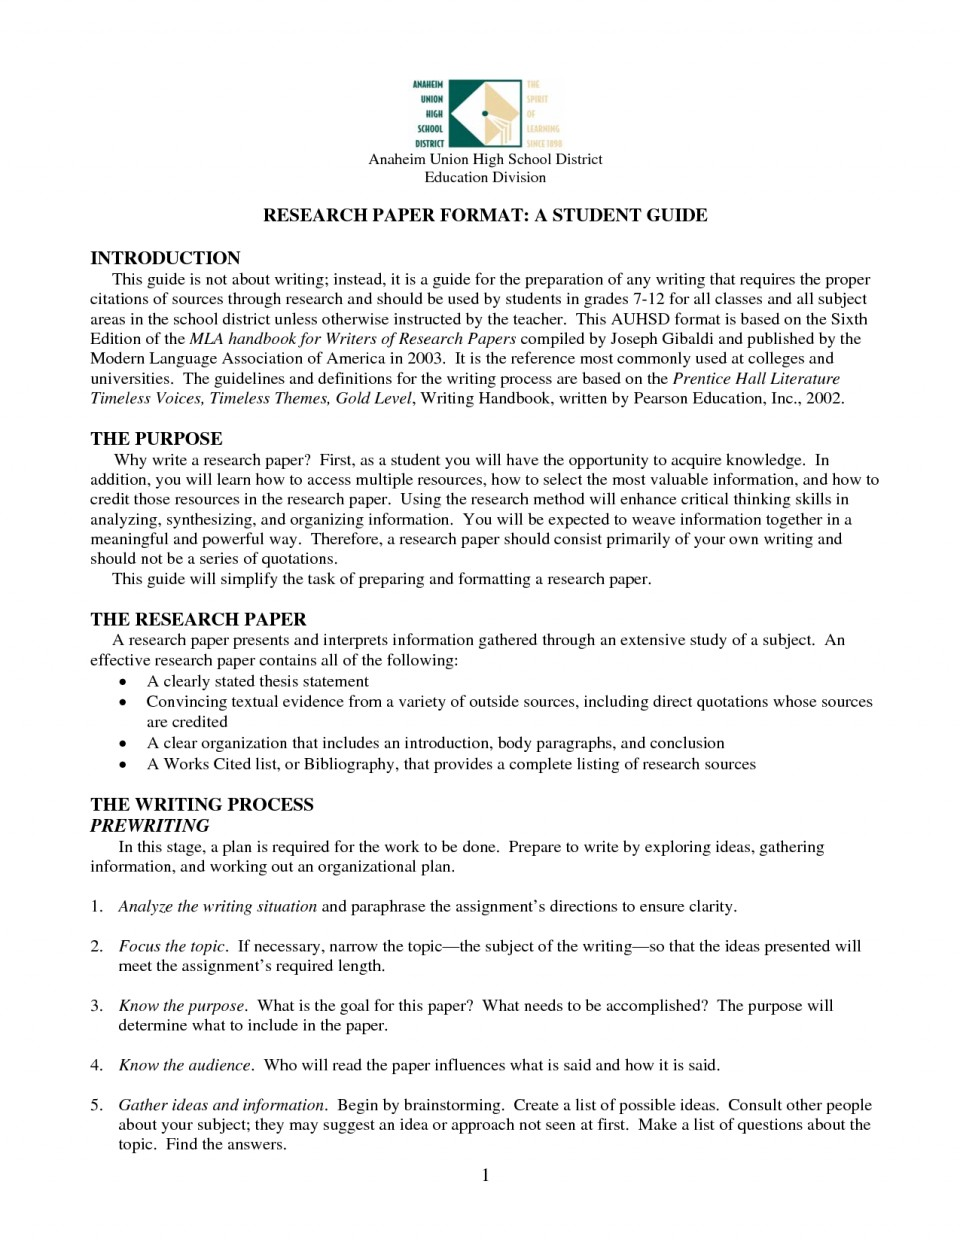 018 Best Research Paper Topics Ideas Of Outline Nice For Papers High School Stupendous Reddit In Education College Student 960